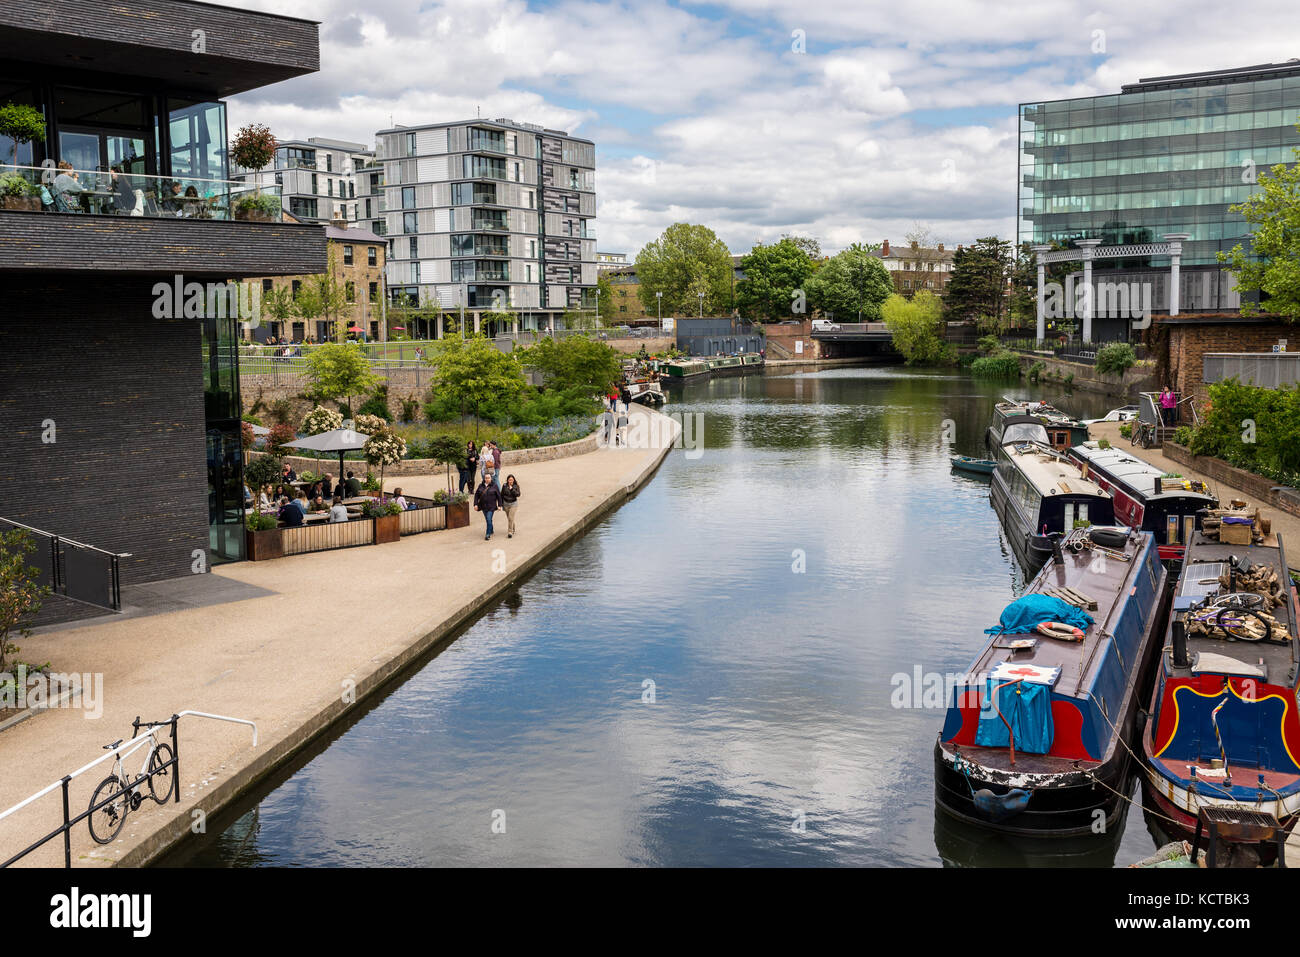 The canalside at Granary Square in the heart of King's Cross with people walking and barges on the canal. London, - Stock Image